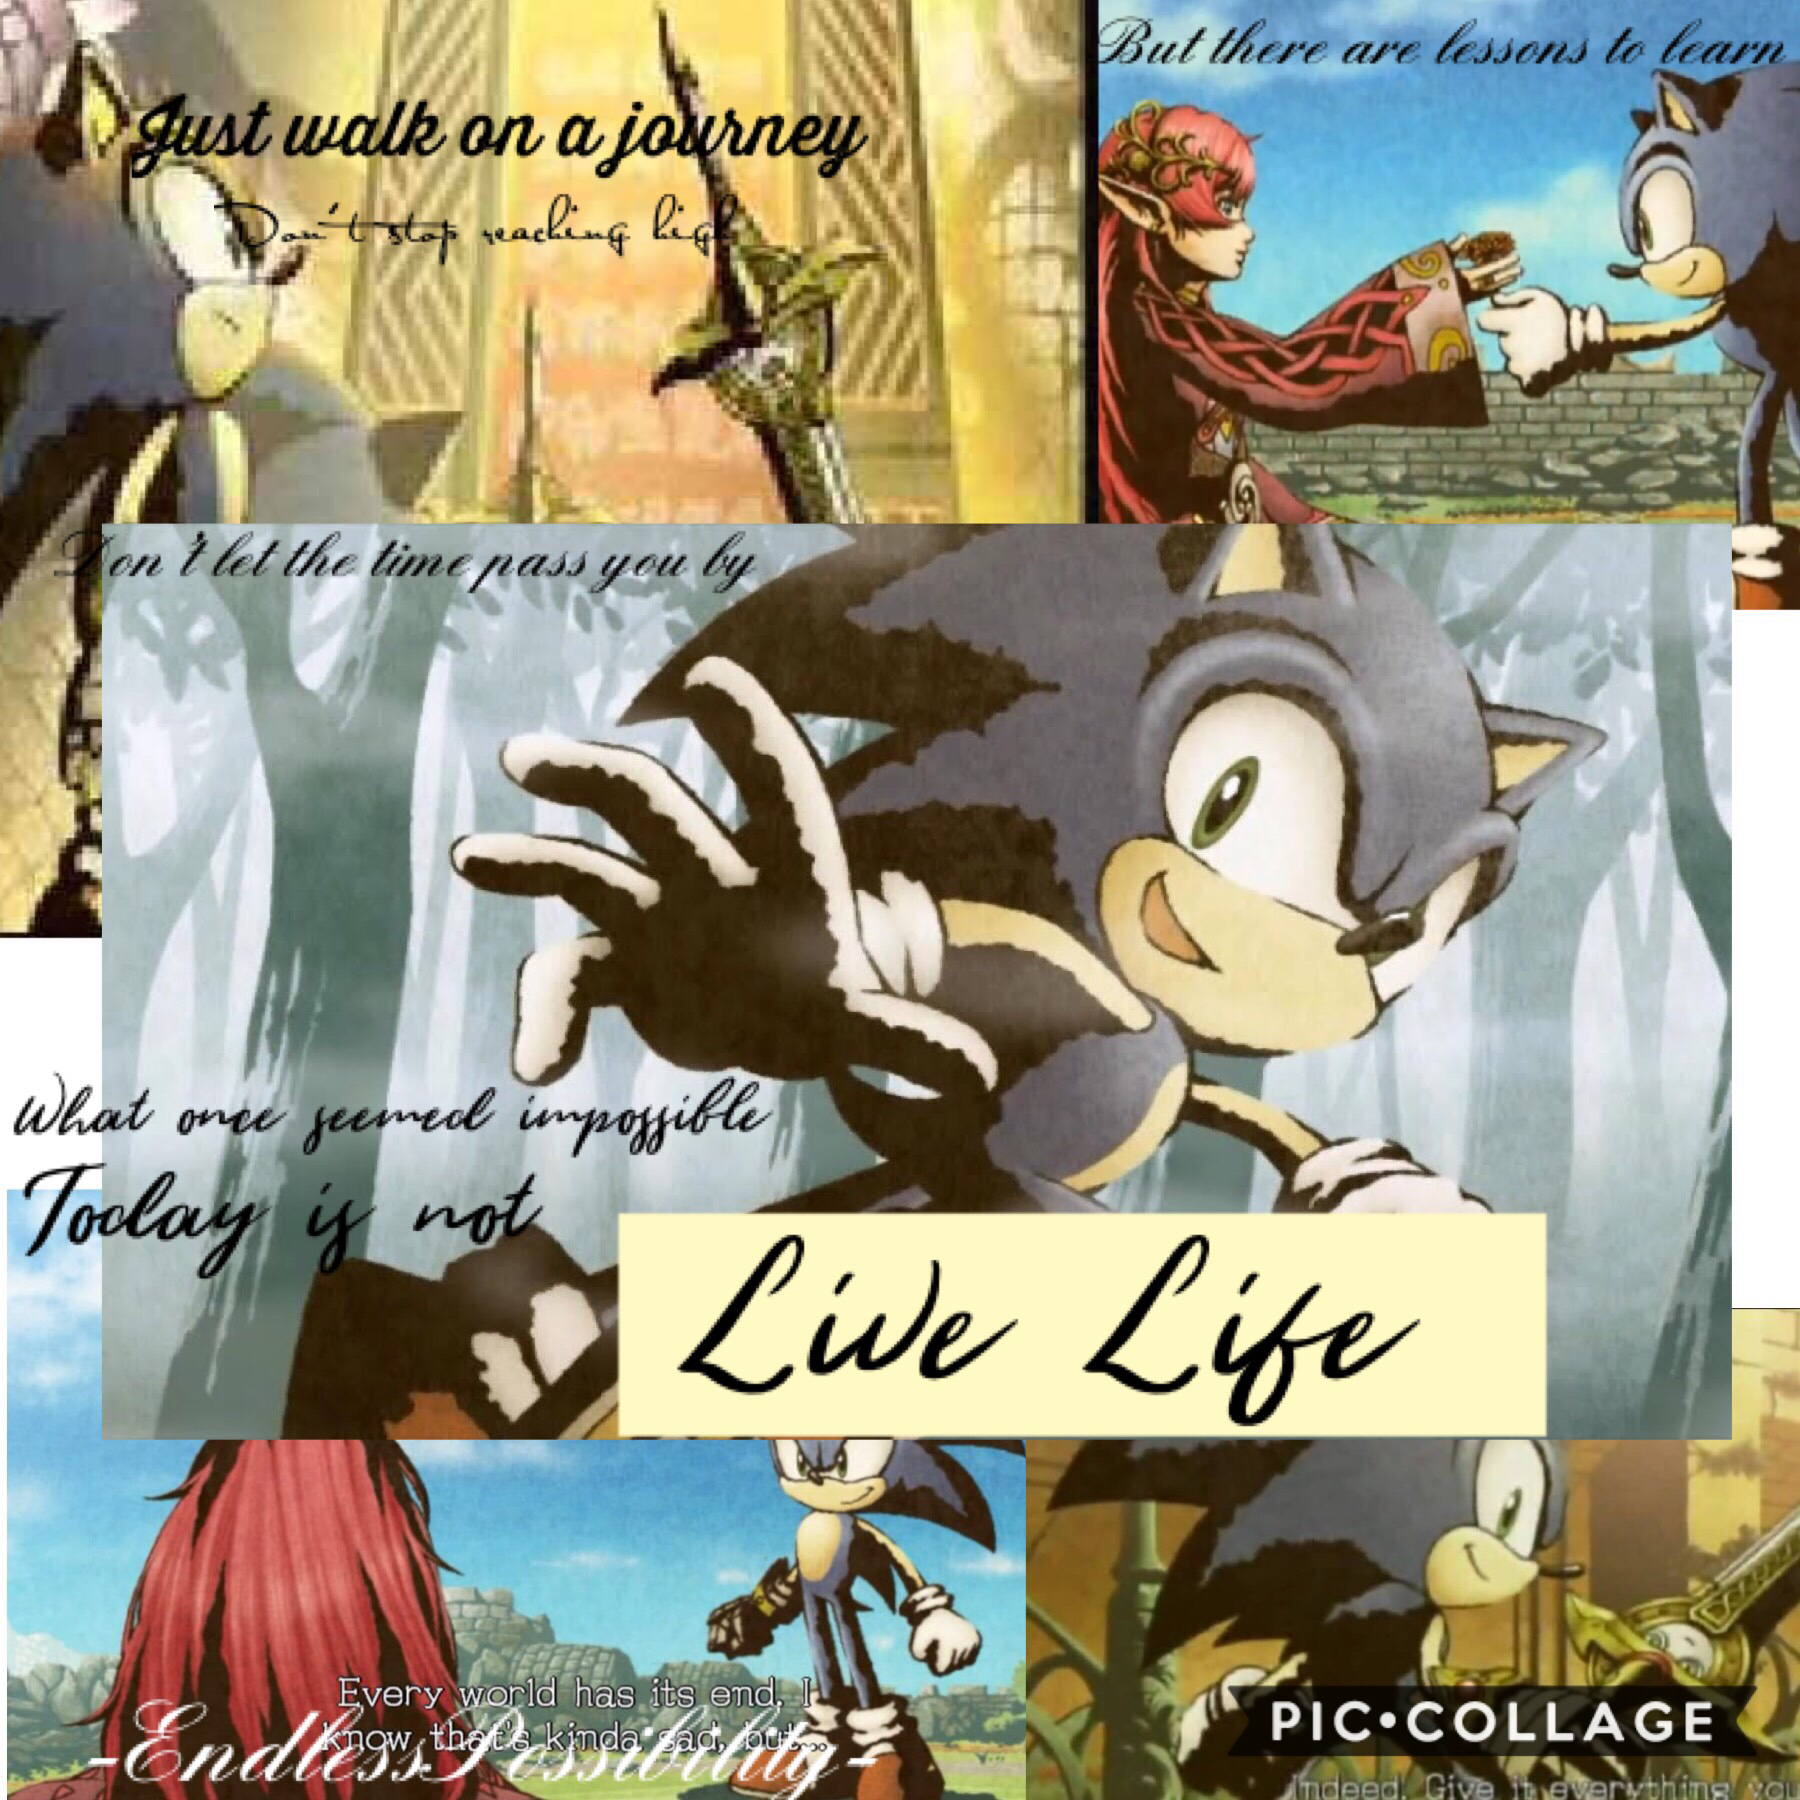 Sorry, I couldn't help myself🤣This song means so much to me, and I saw an old edit I made with it and couldn't resist making another. Live life💗